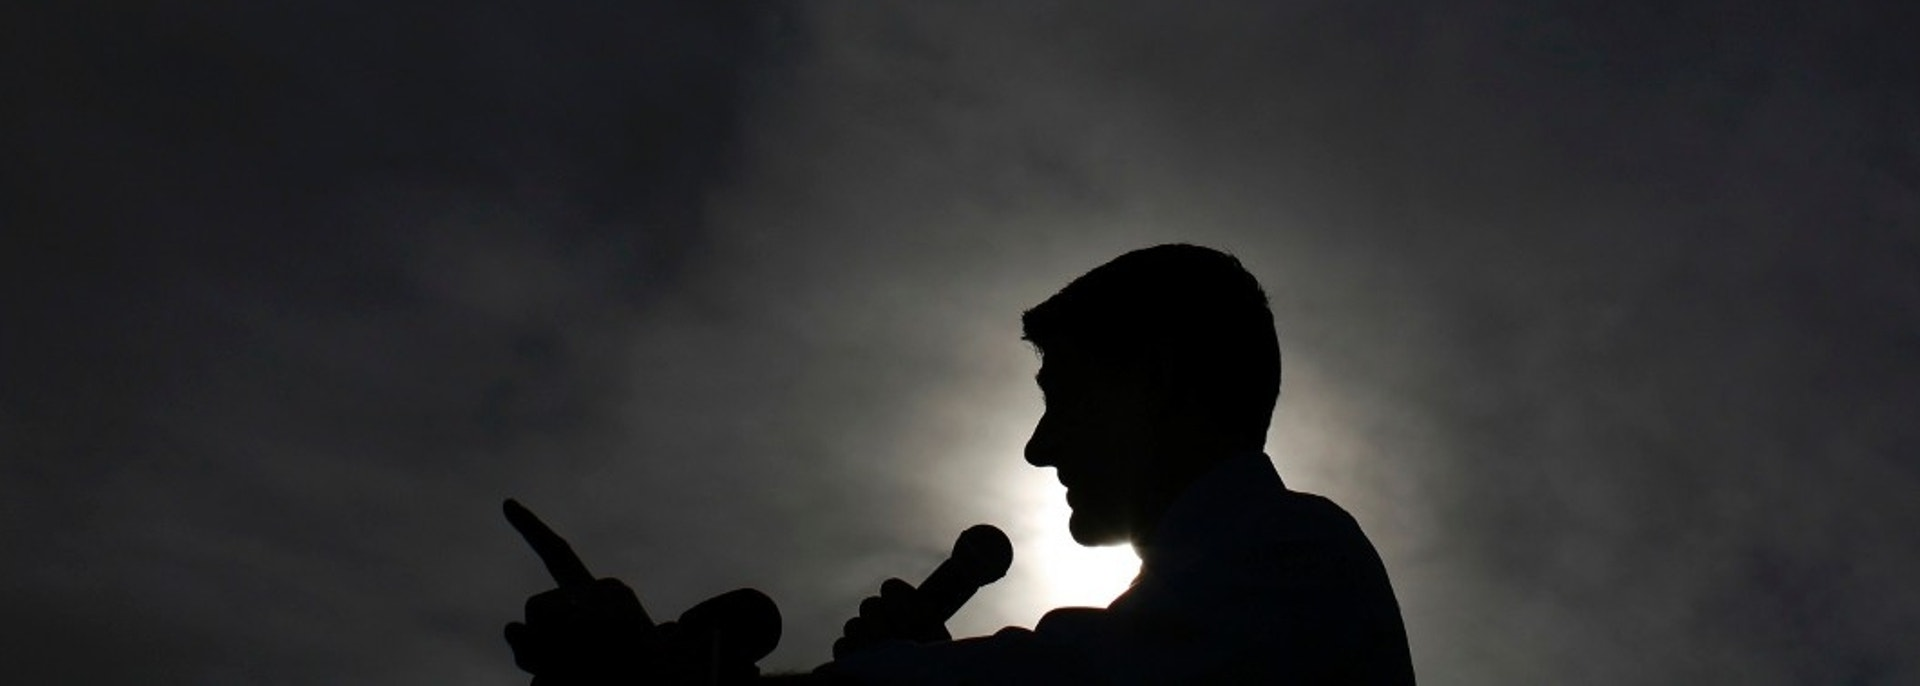 Republican vice presidential candidate Paul Ryan attends a campaign event at Johnson's Corner in Johnstown, Colorado November 5, 2012. REUTERS/Eric Thayer (UNITED STATES - Tags: POLITICS ELECTIONS USA PRESIDENTIAL ELECTION) - GM1E8B60HPU01